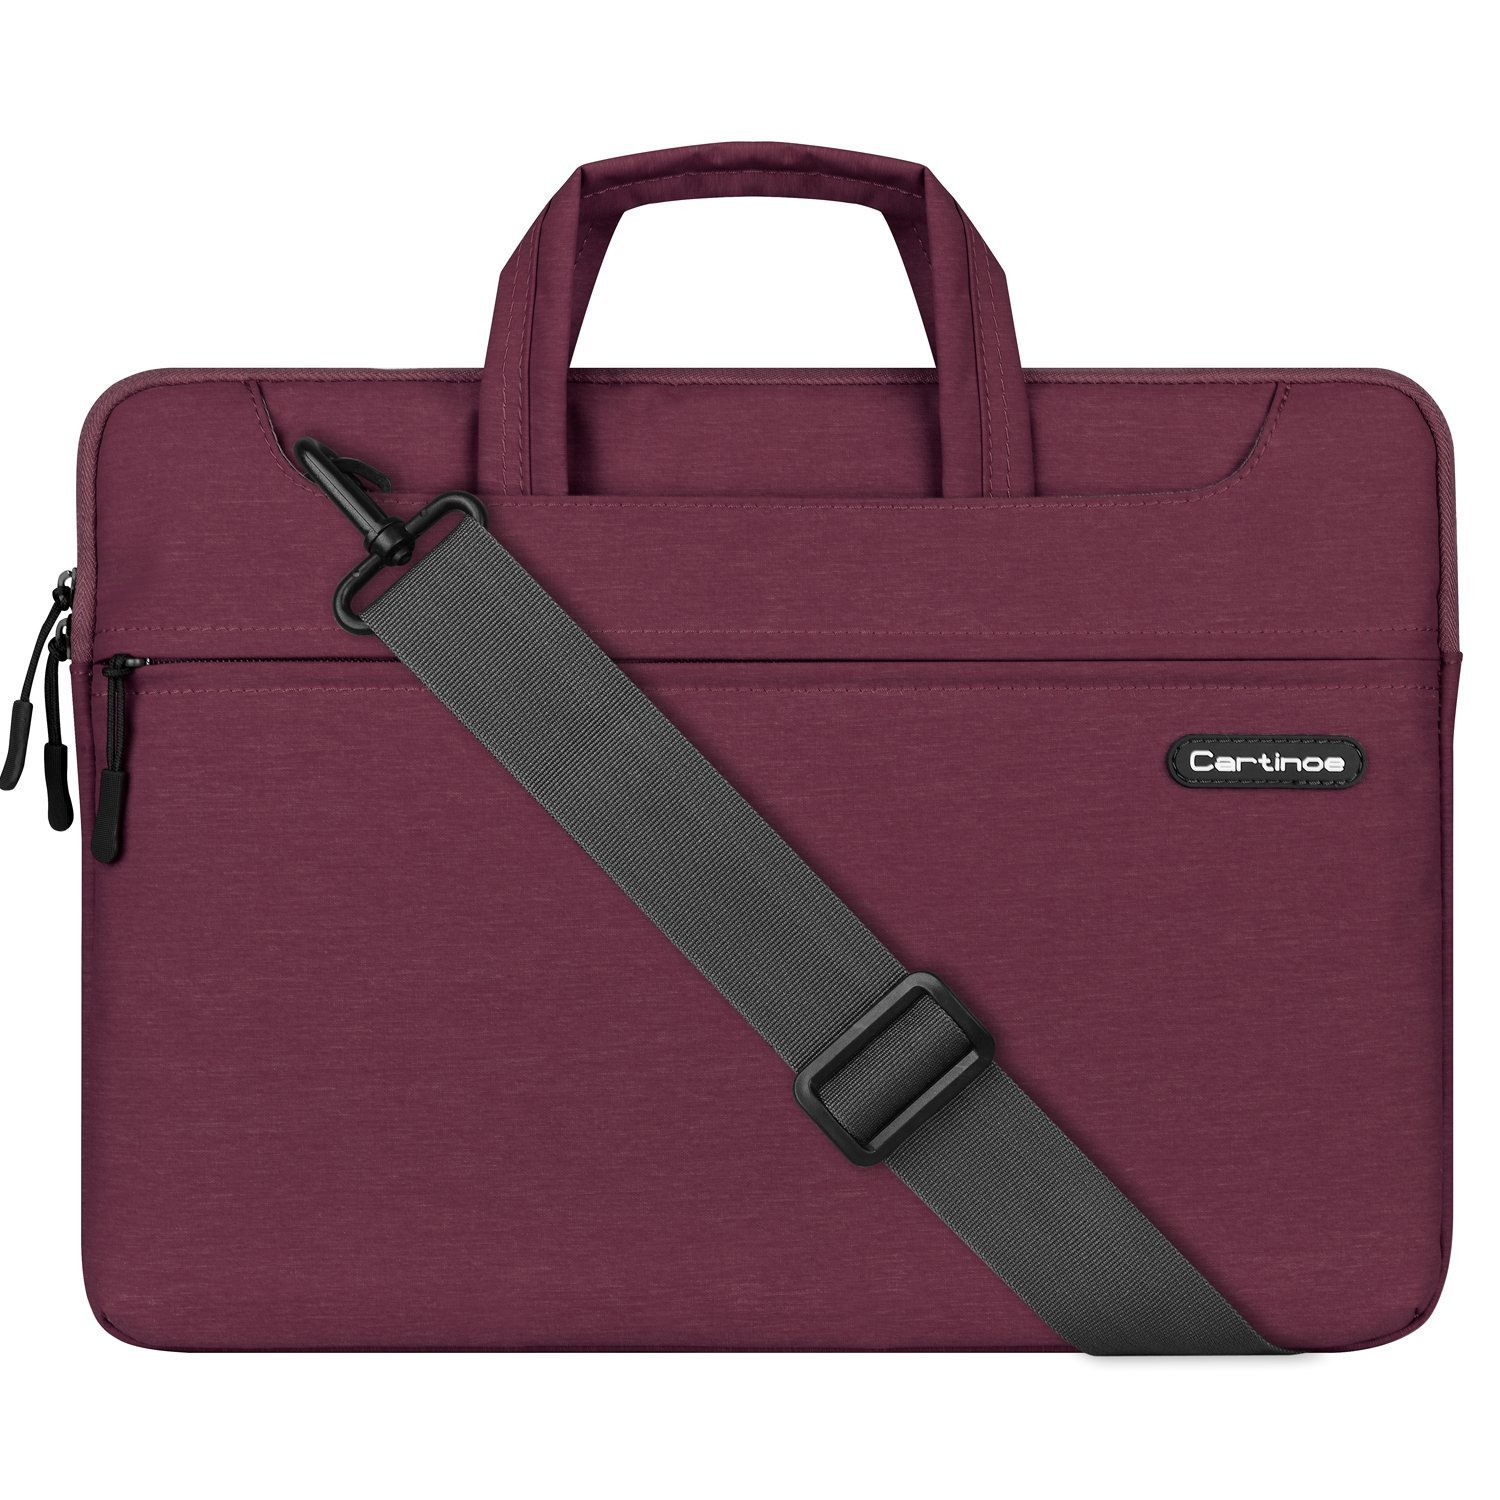 Cartinoe Laptop Shoulder Bag 11 inch, 11.6 inch Laptop Briefcase Tablet Protective Bag Water Repellent Computer Sleeve Case Messenger Bag for Business/College/ Women/Men, Purple